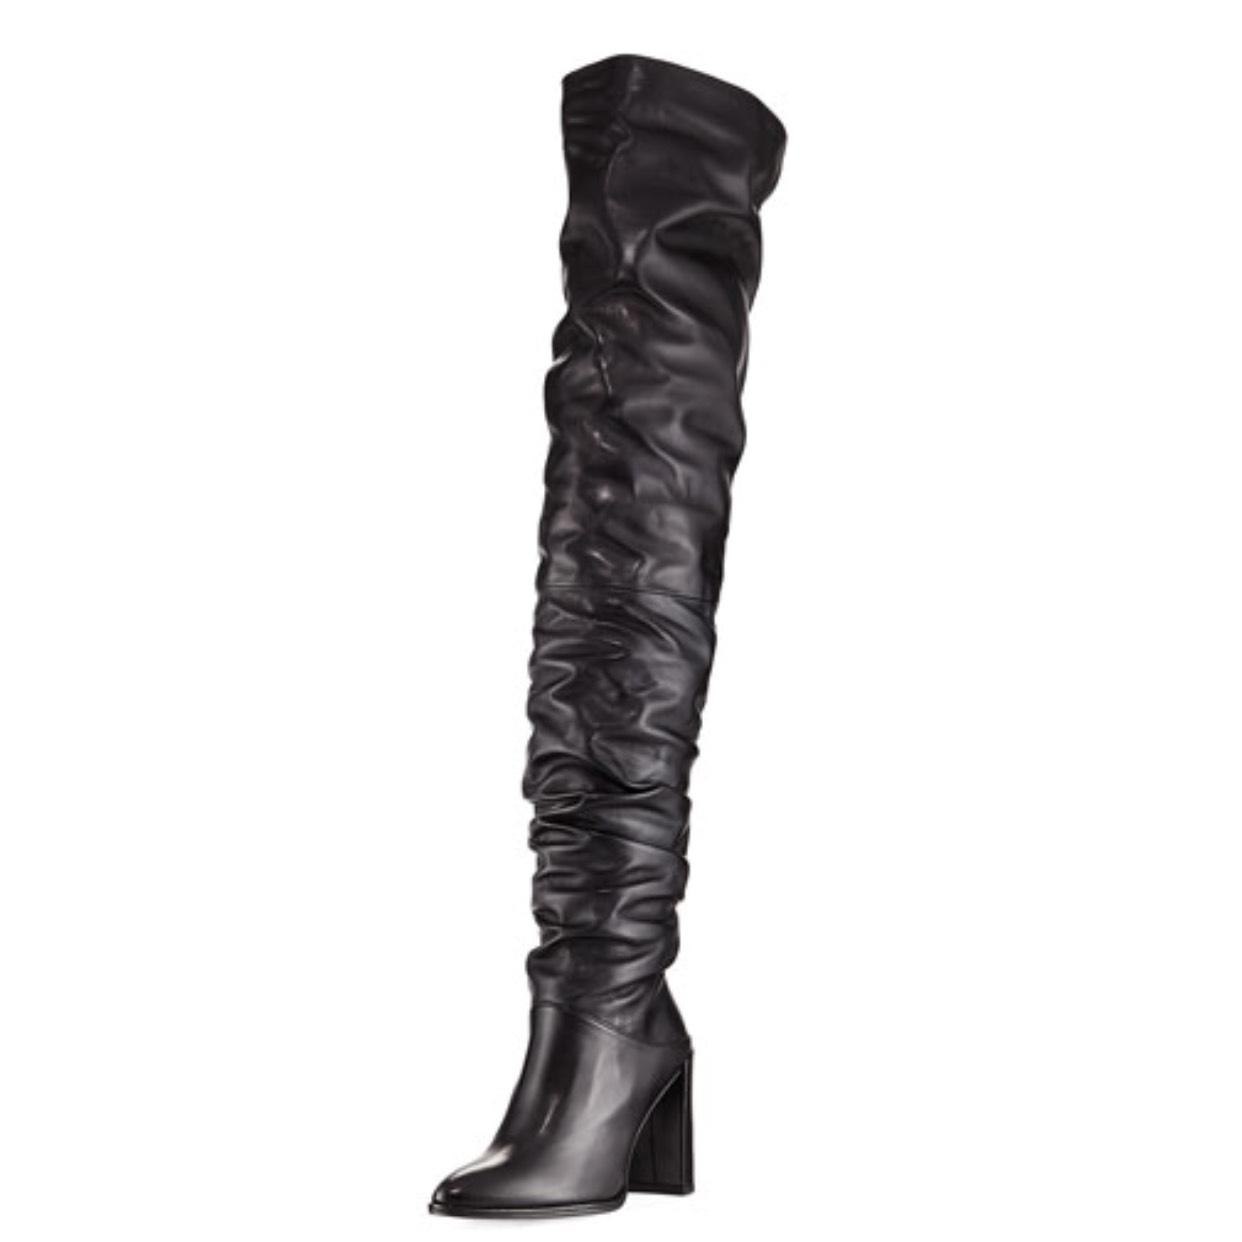 Stuart Weitzman Black Leather Histyle Over The Knee Boots/Booties Size US 6.5 Regular (M, B)